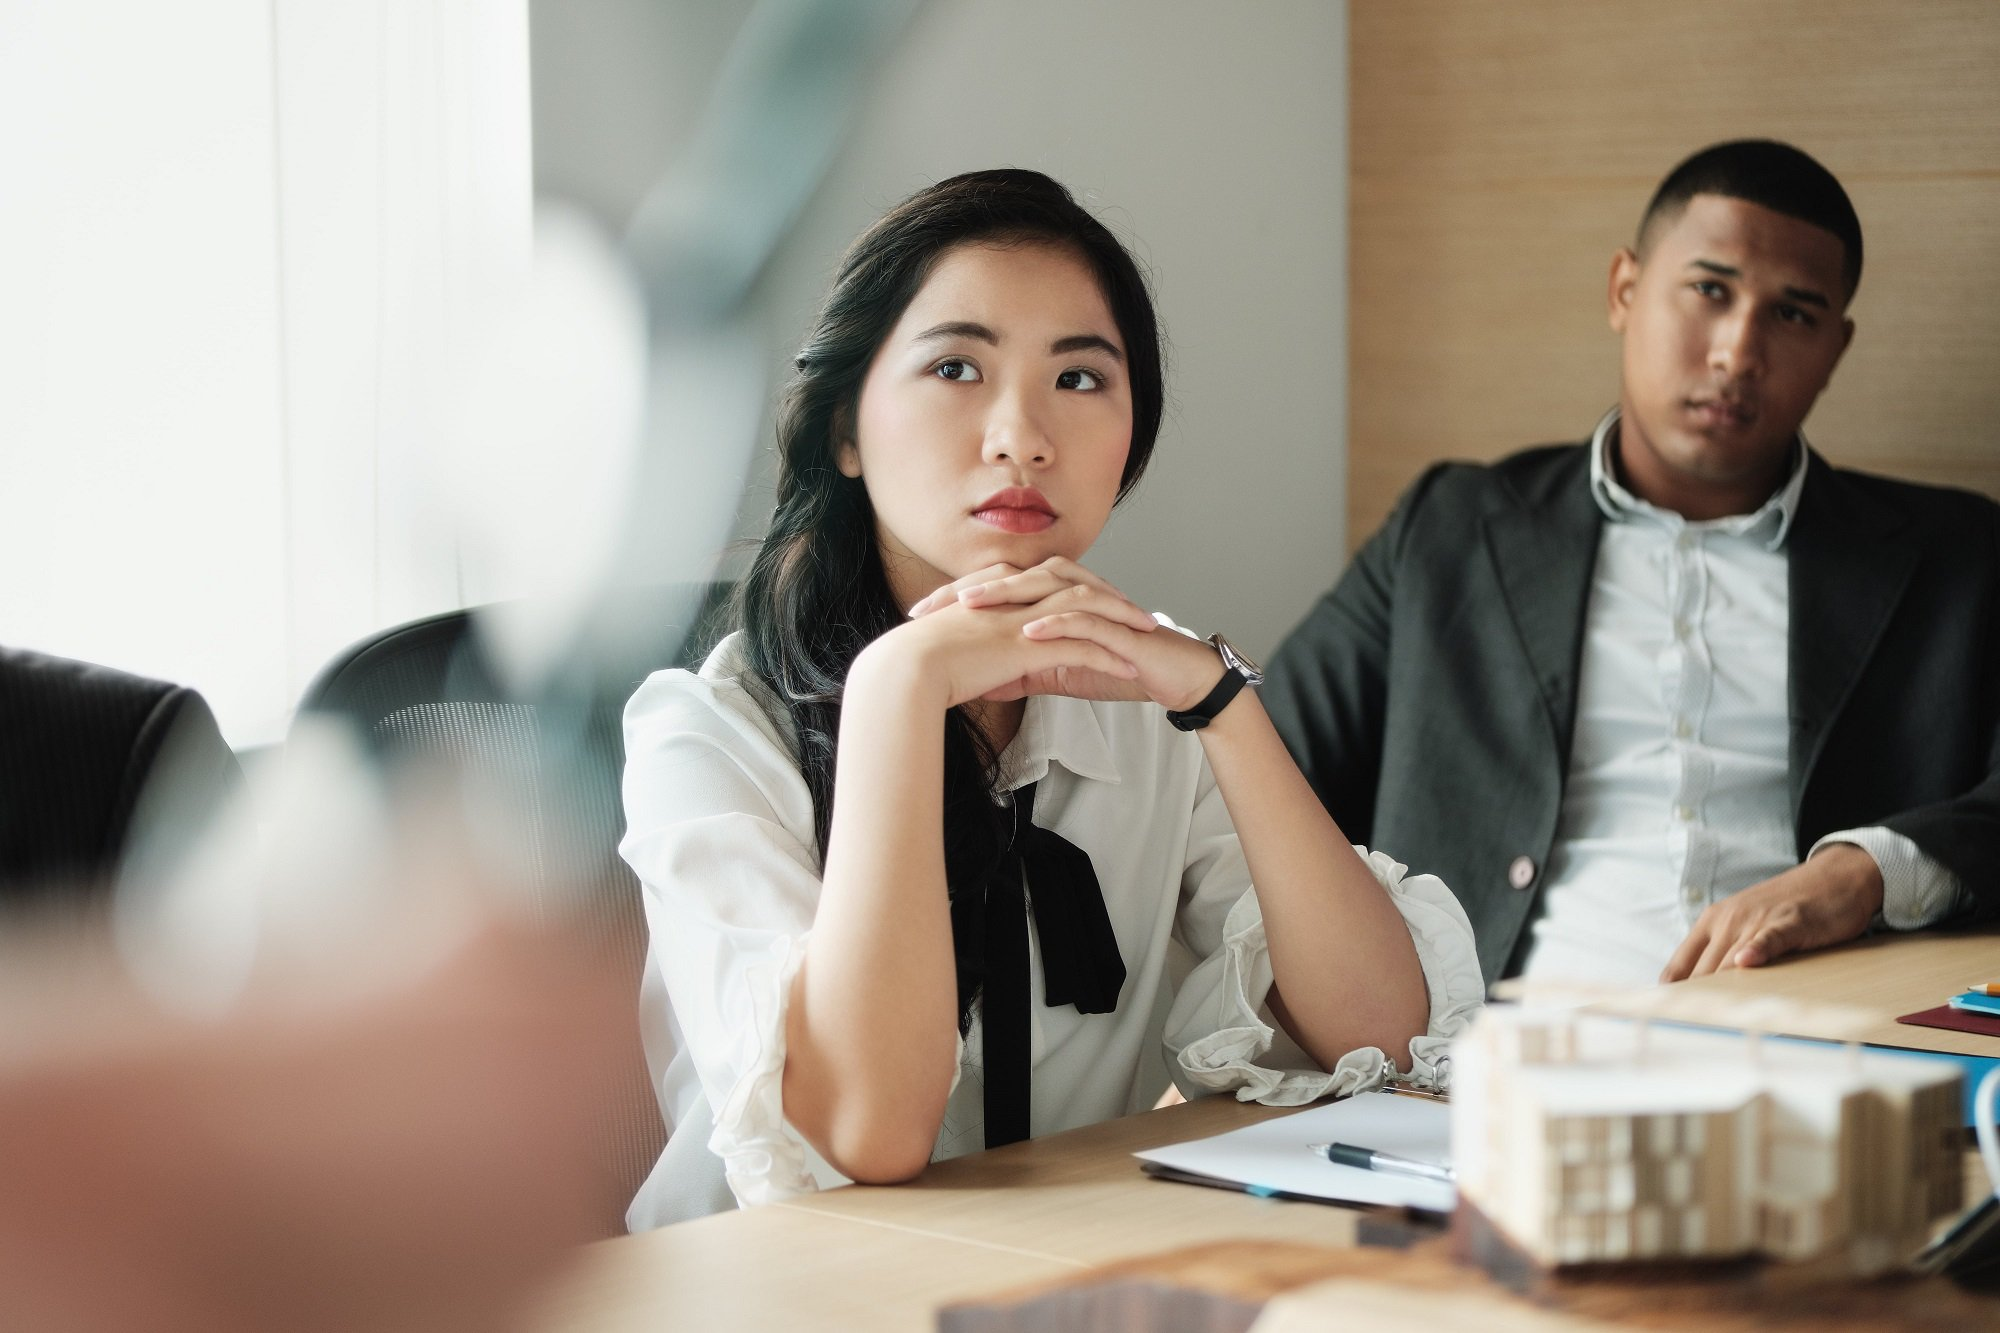 Young Asian woman listens intently in an office setting